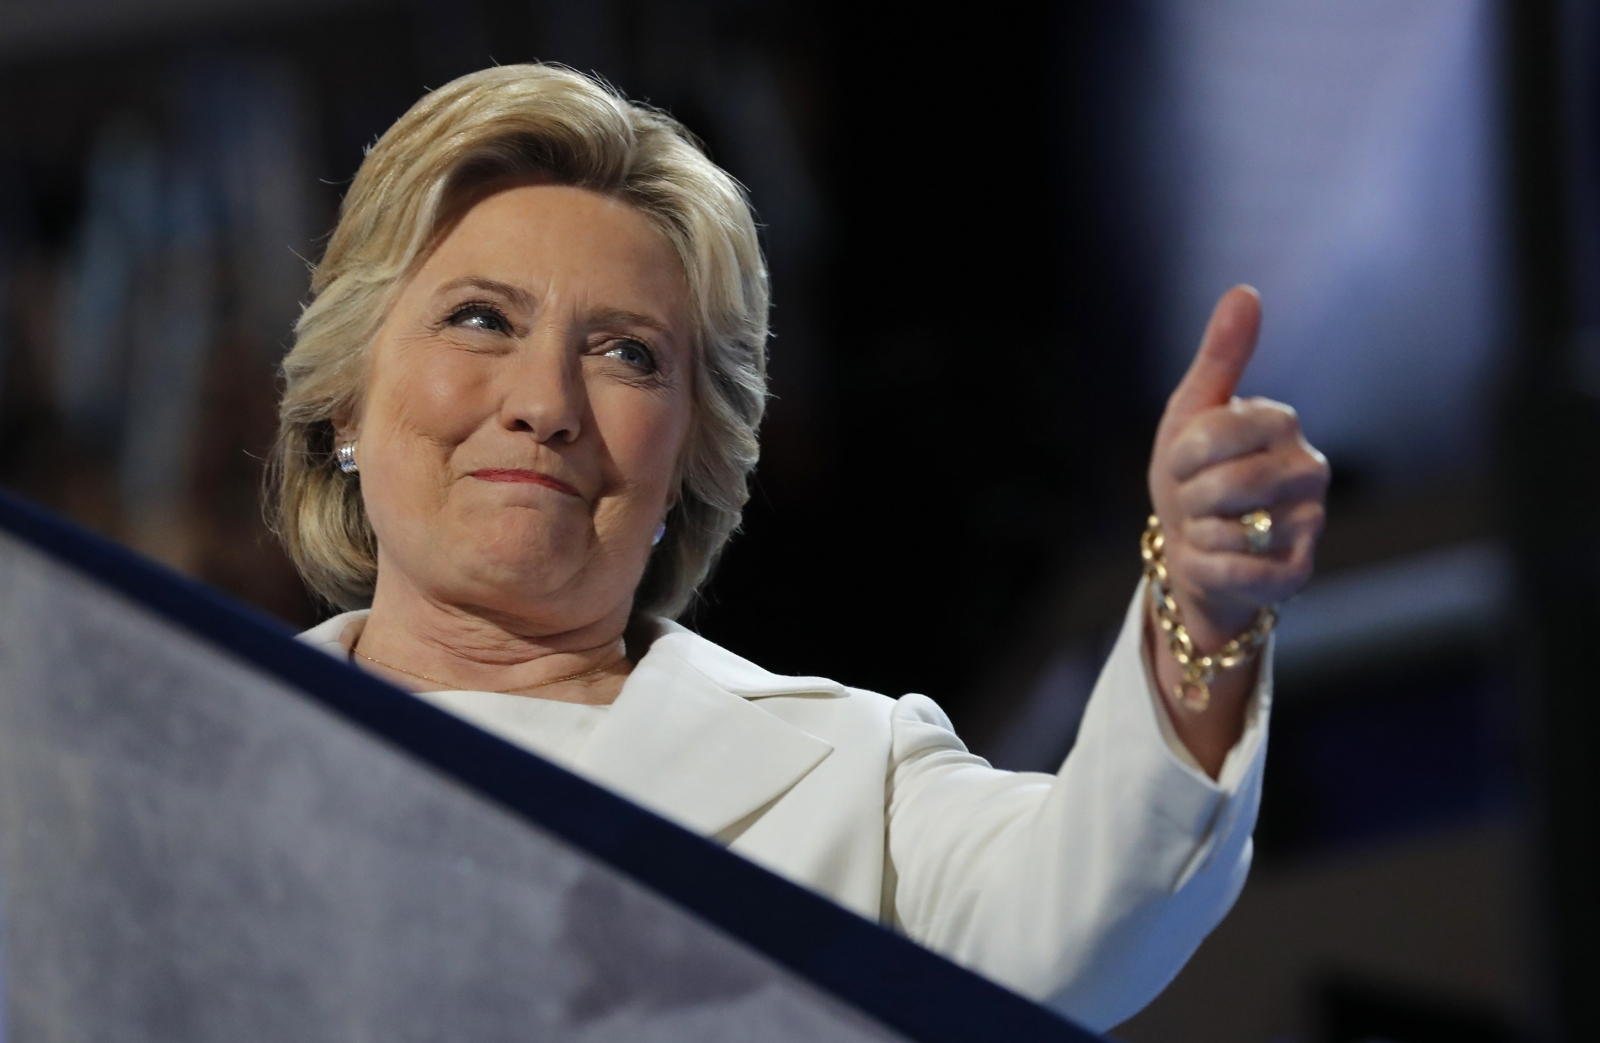 dnc 2016 first female presidential candidate hillary